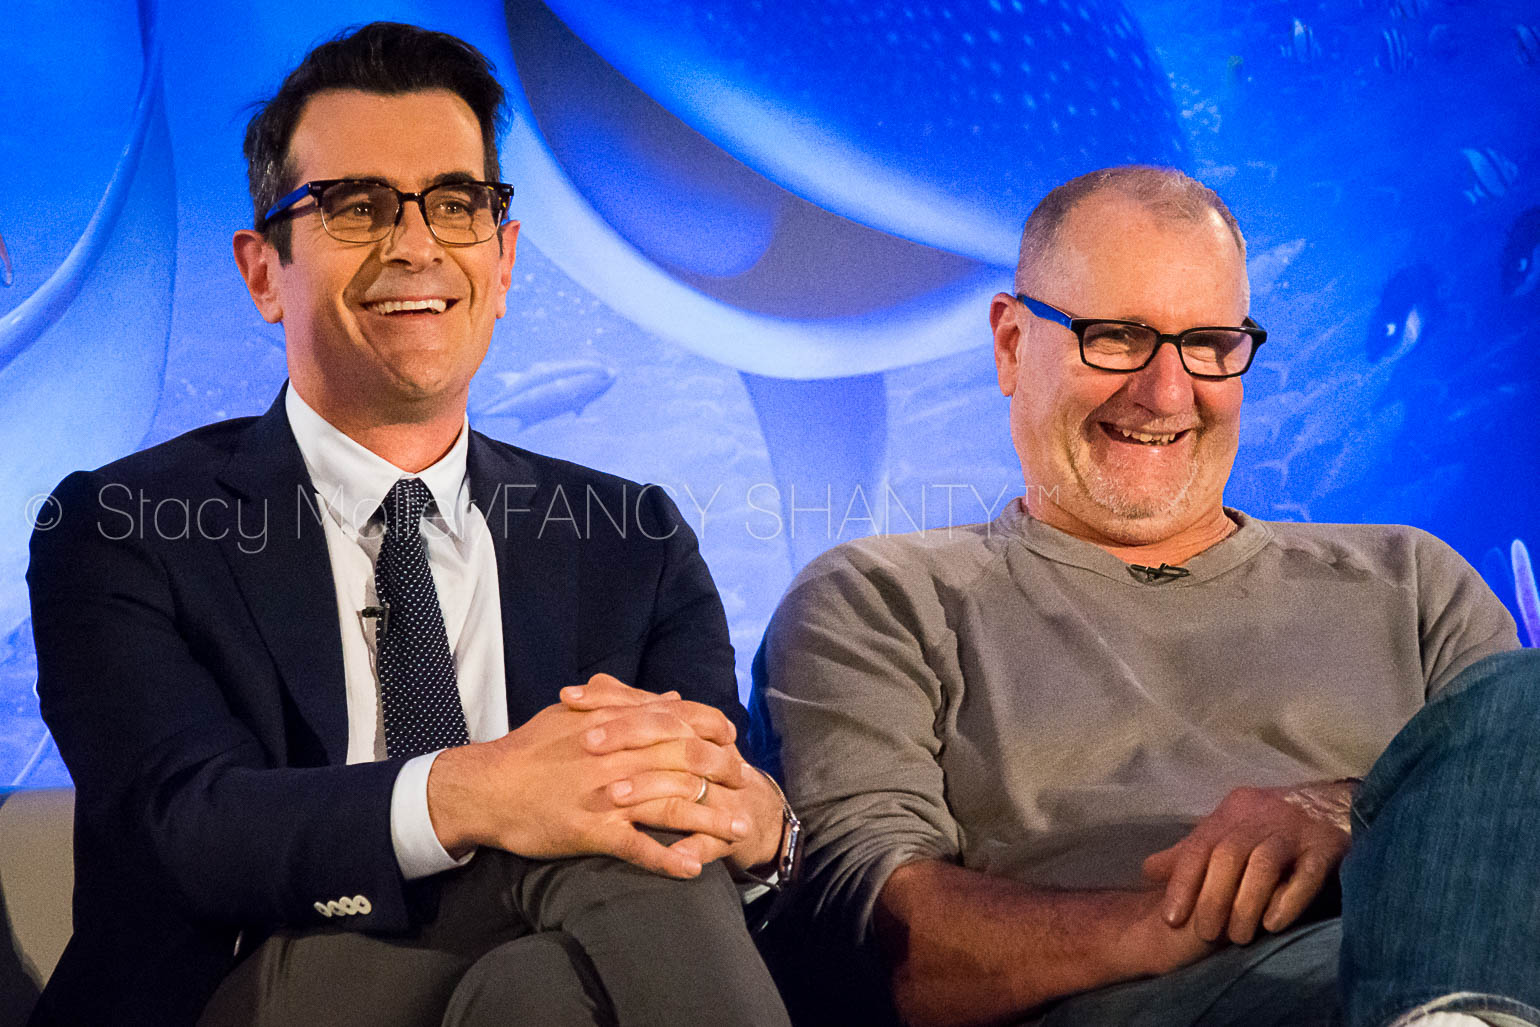 Ty Burrell & Ed O'Neill - Finding Dory Press Conference